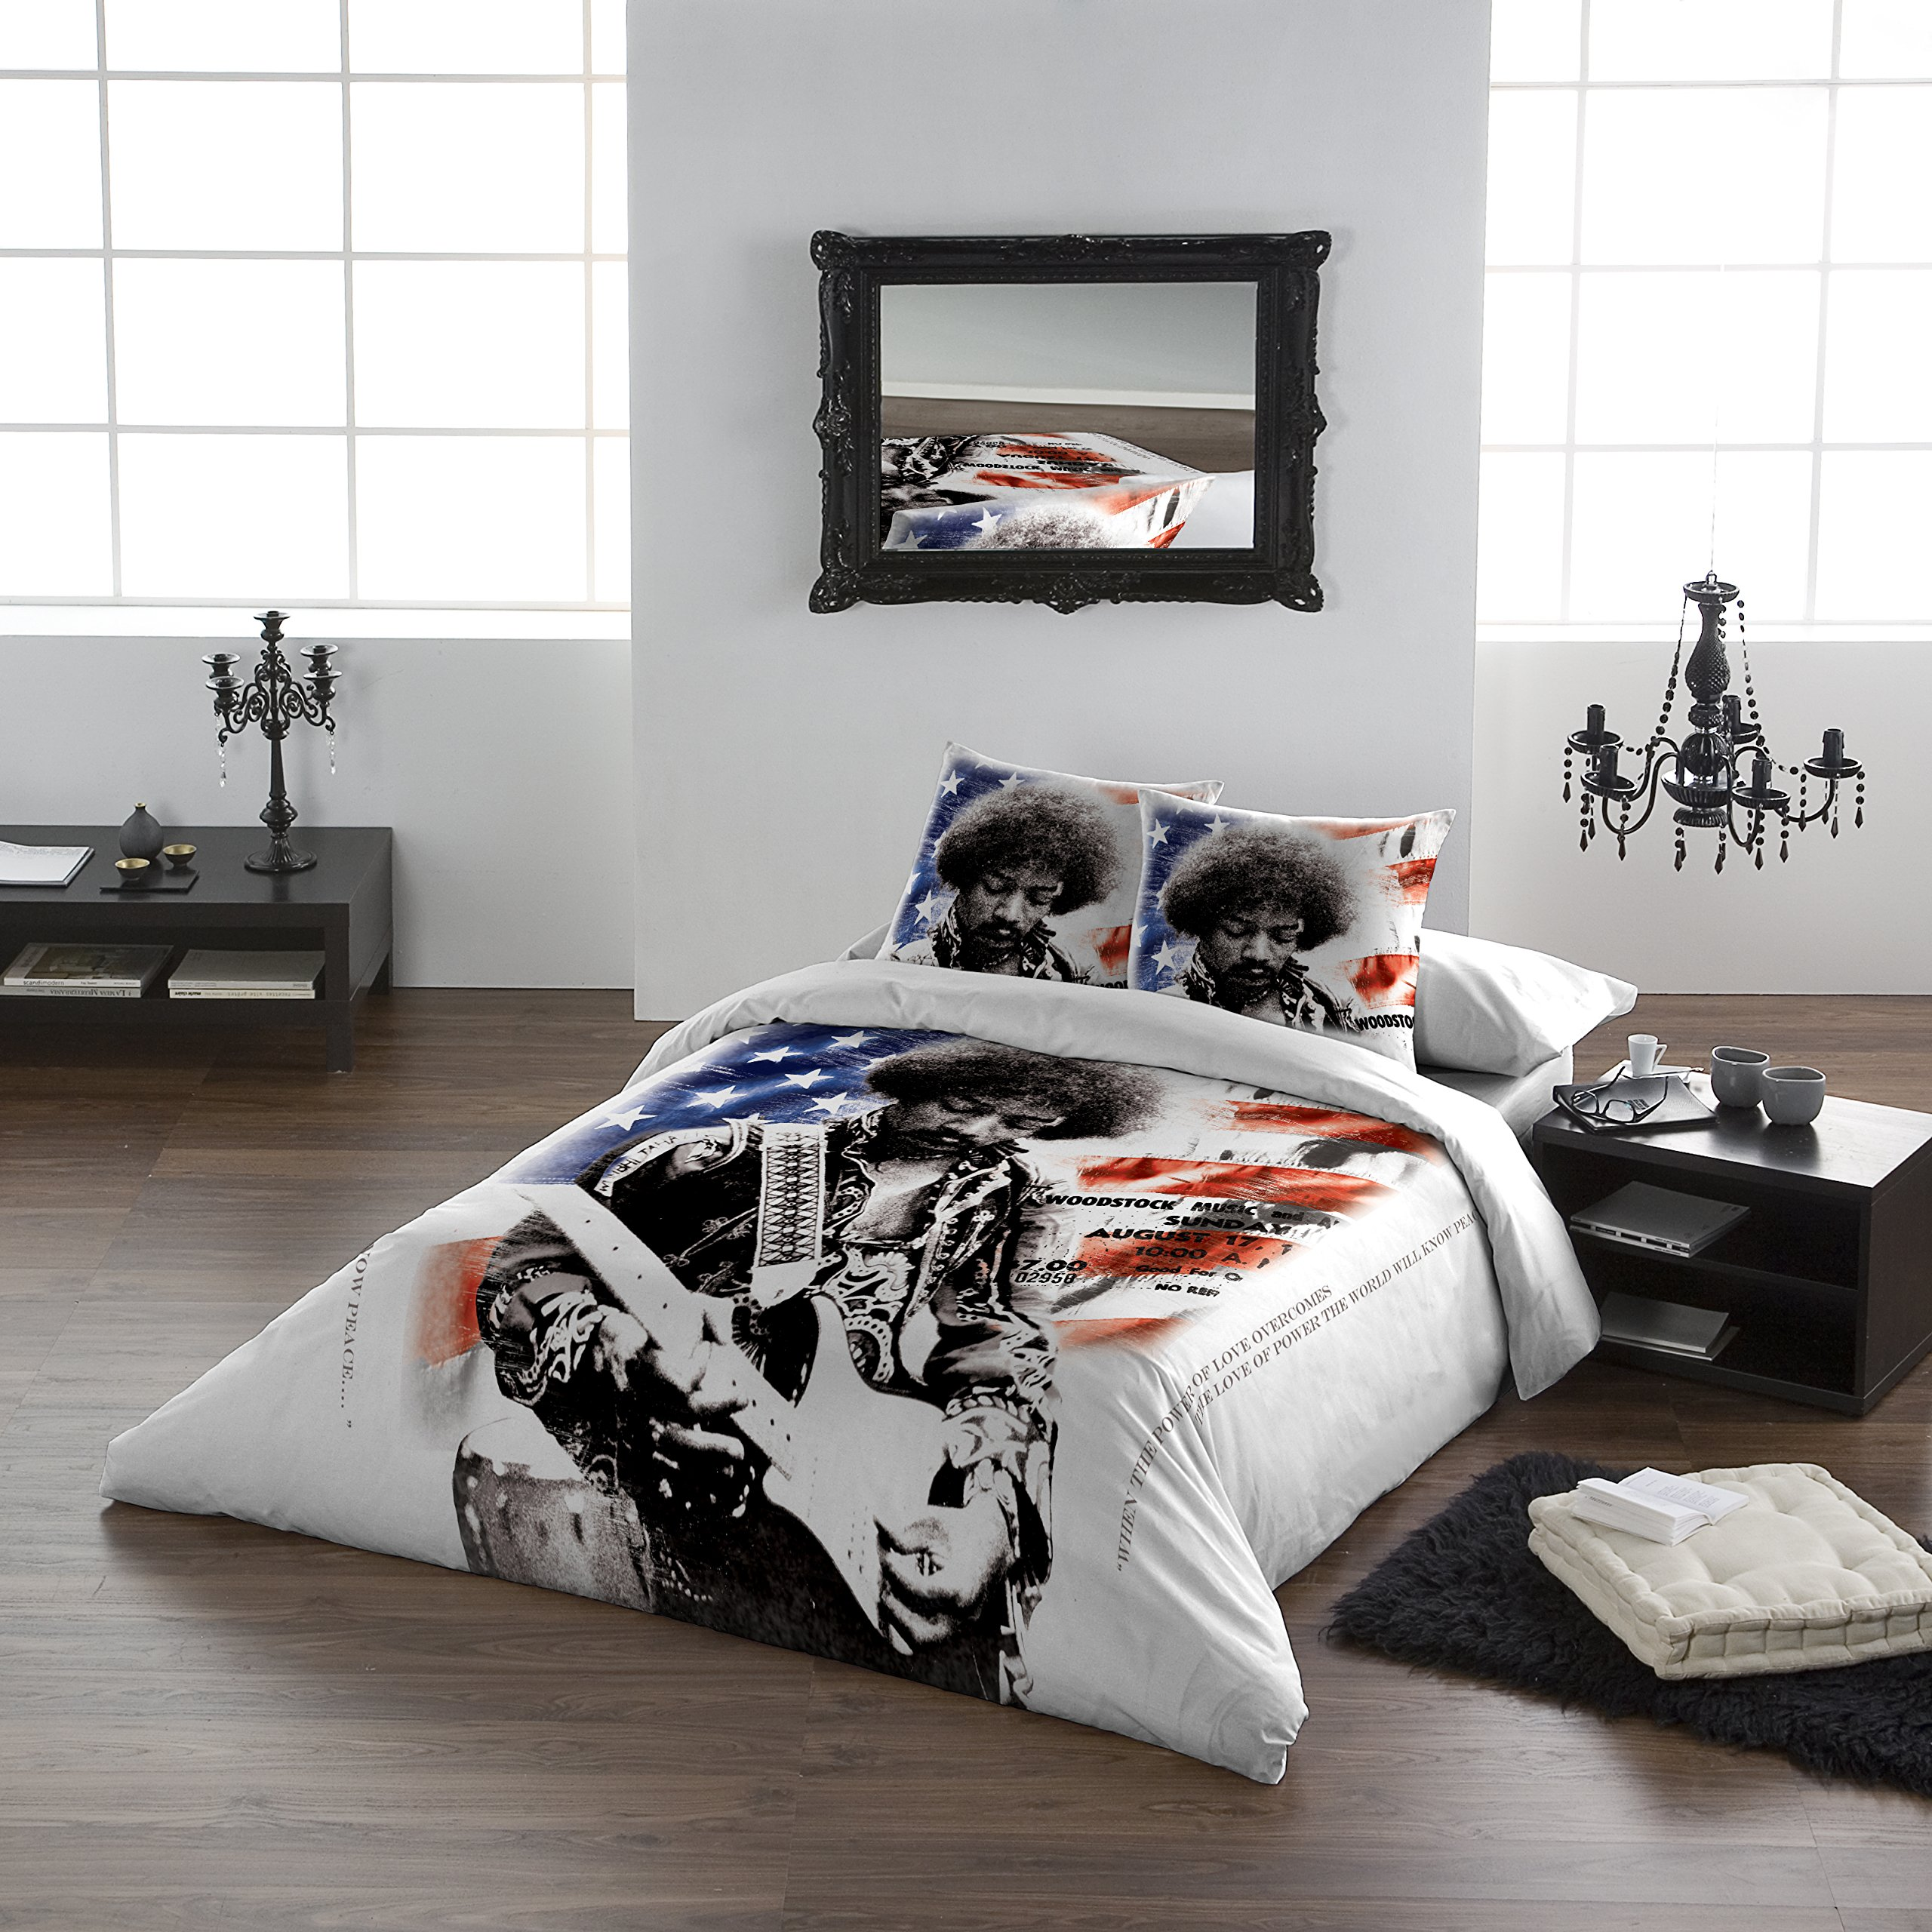 Jimi Hendrix - LOVE POWER - Duvet & Pillowcase Covers Set for Queensize Bed by Wild Star Home (Image #1)